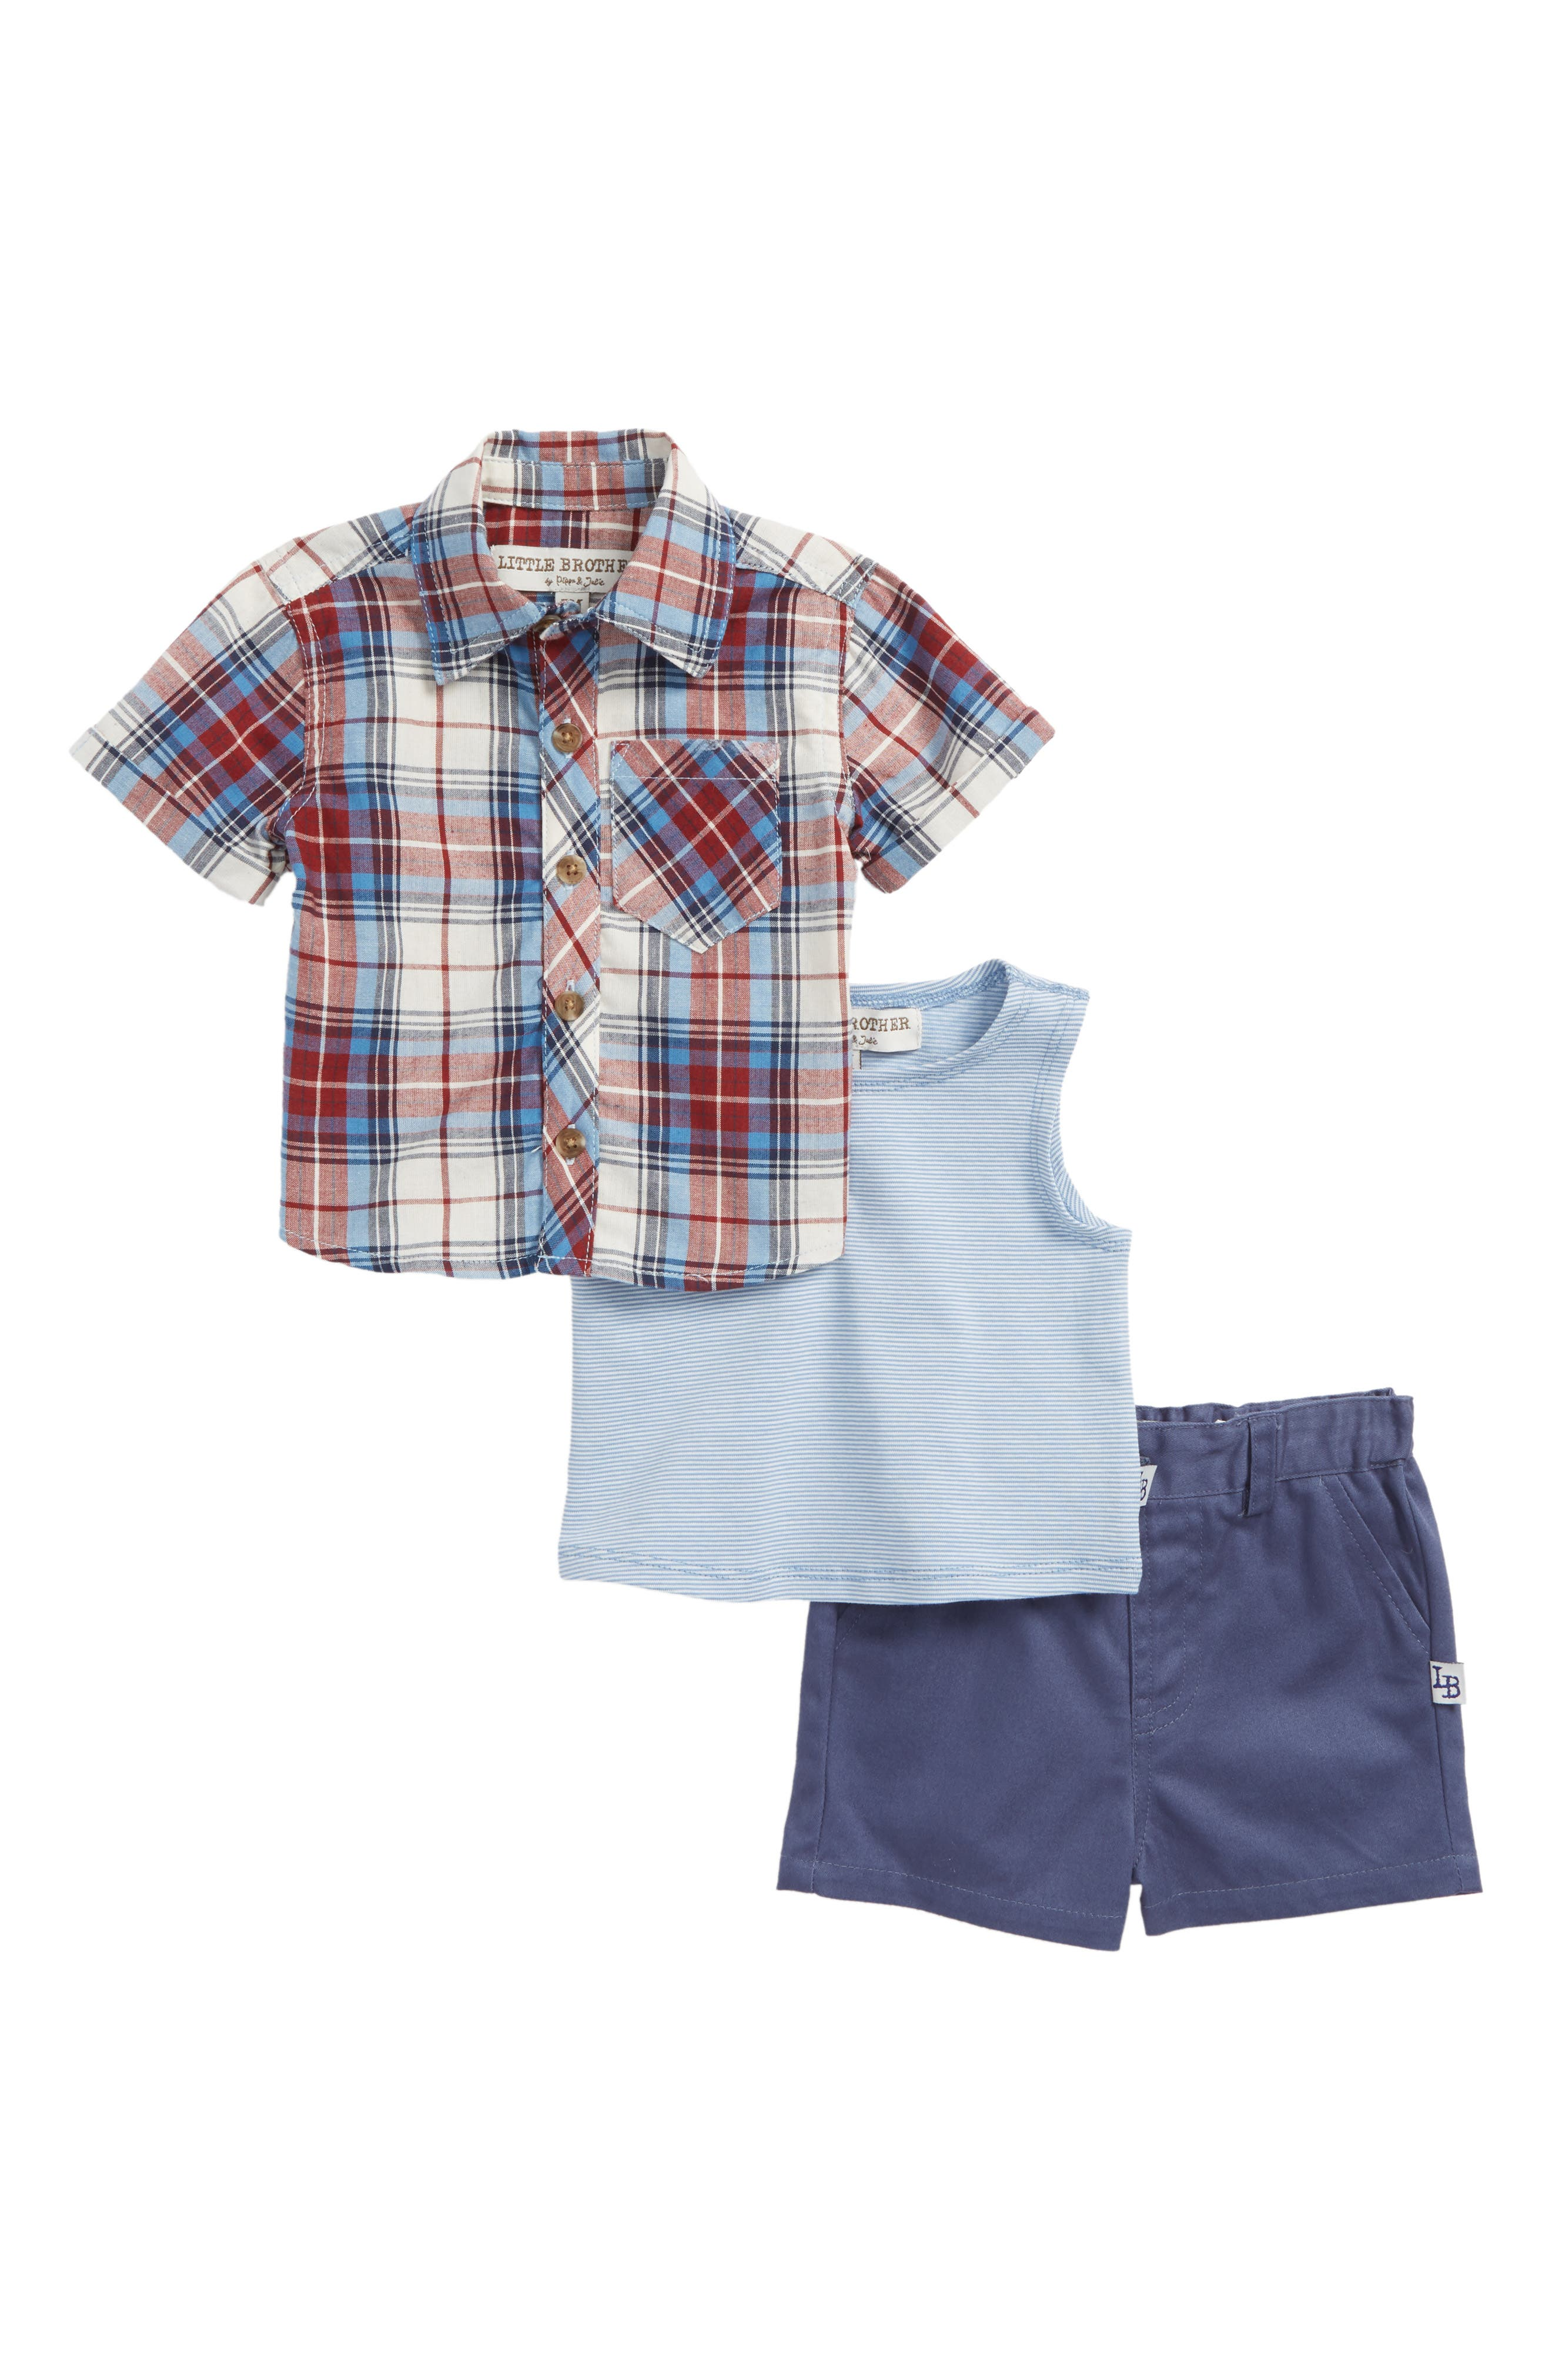 Little Brother by Pippa & Julie Plaid Shirt, Tank Top & Shorts Set (Baby Boys)